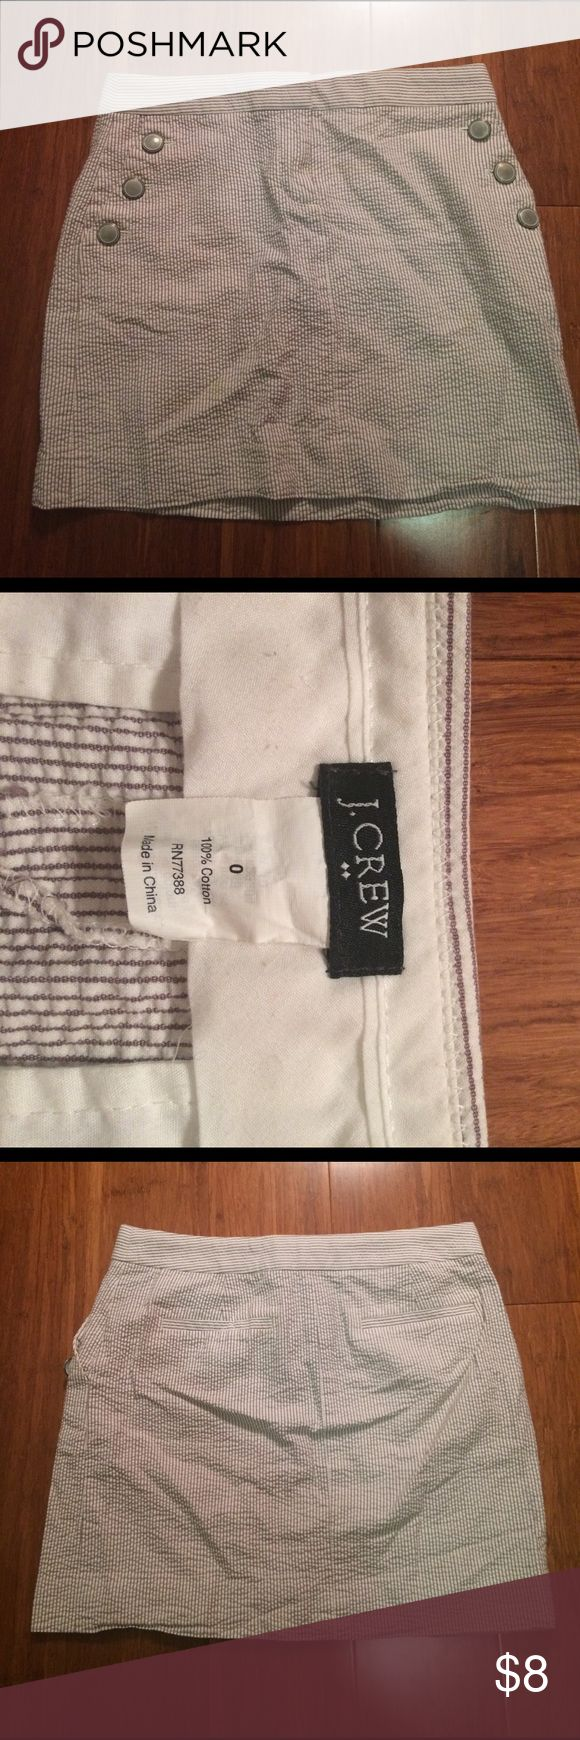 Adorable J crew skirt A very chic J crew skirt in excellent condition! No wear or tear! Size 0 it will be on the short side J. Crew Skirts Mini